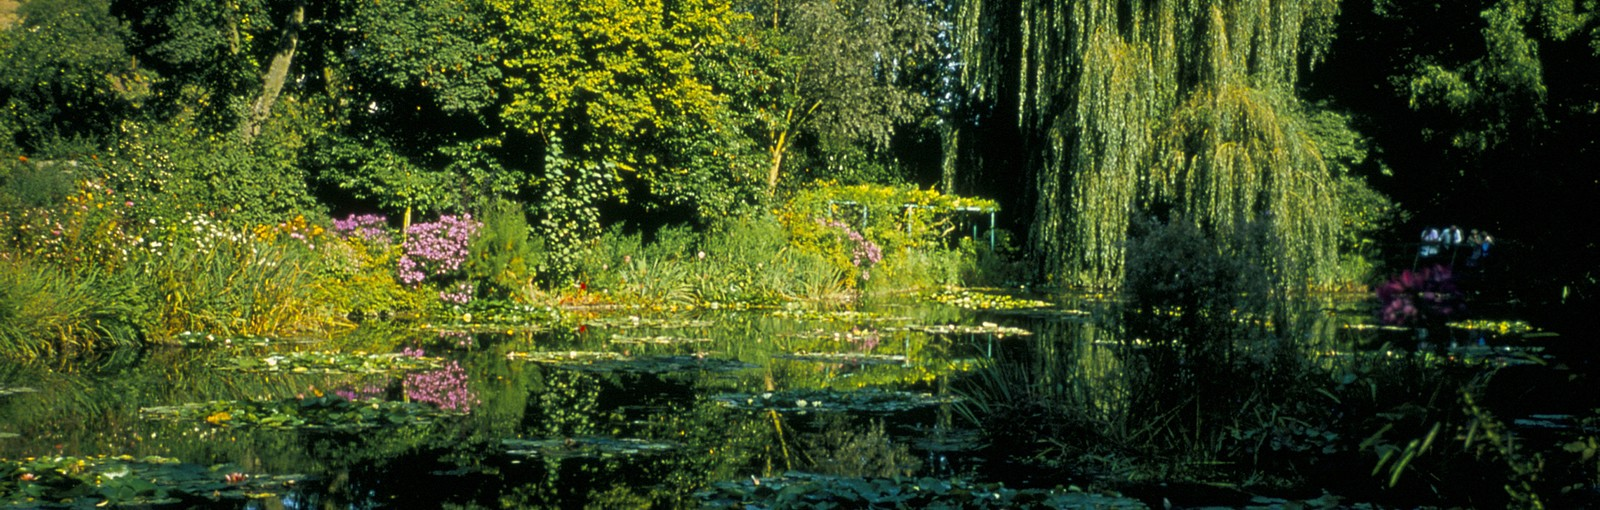 Tours Giverny and Versailles - Full days - Day tours from Paris